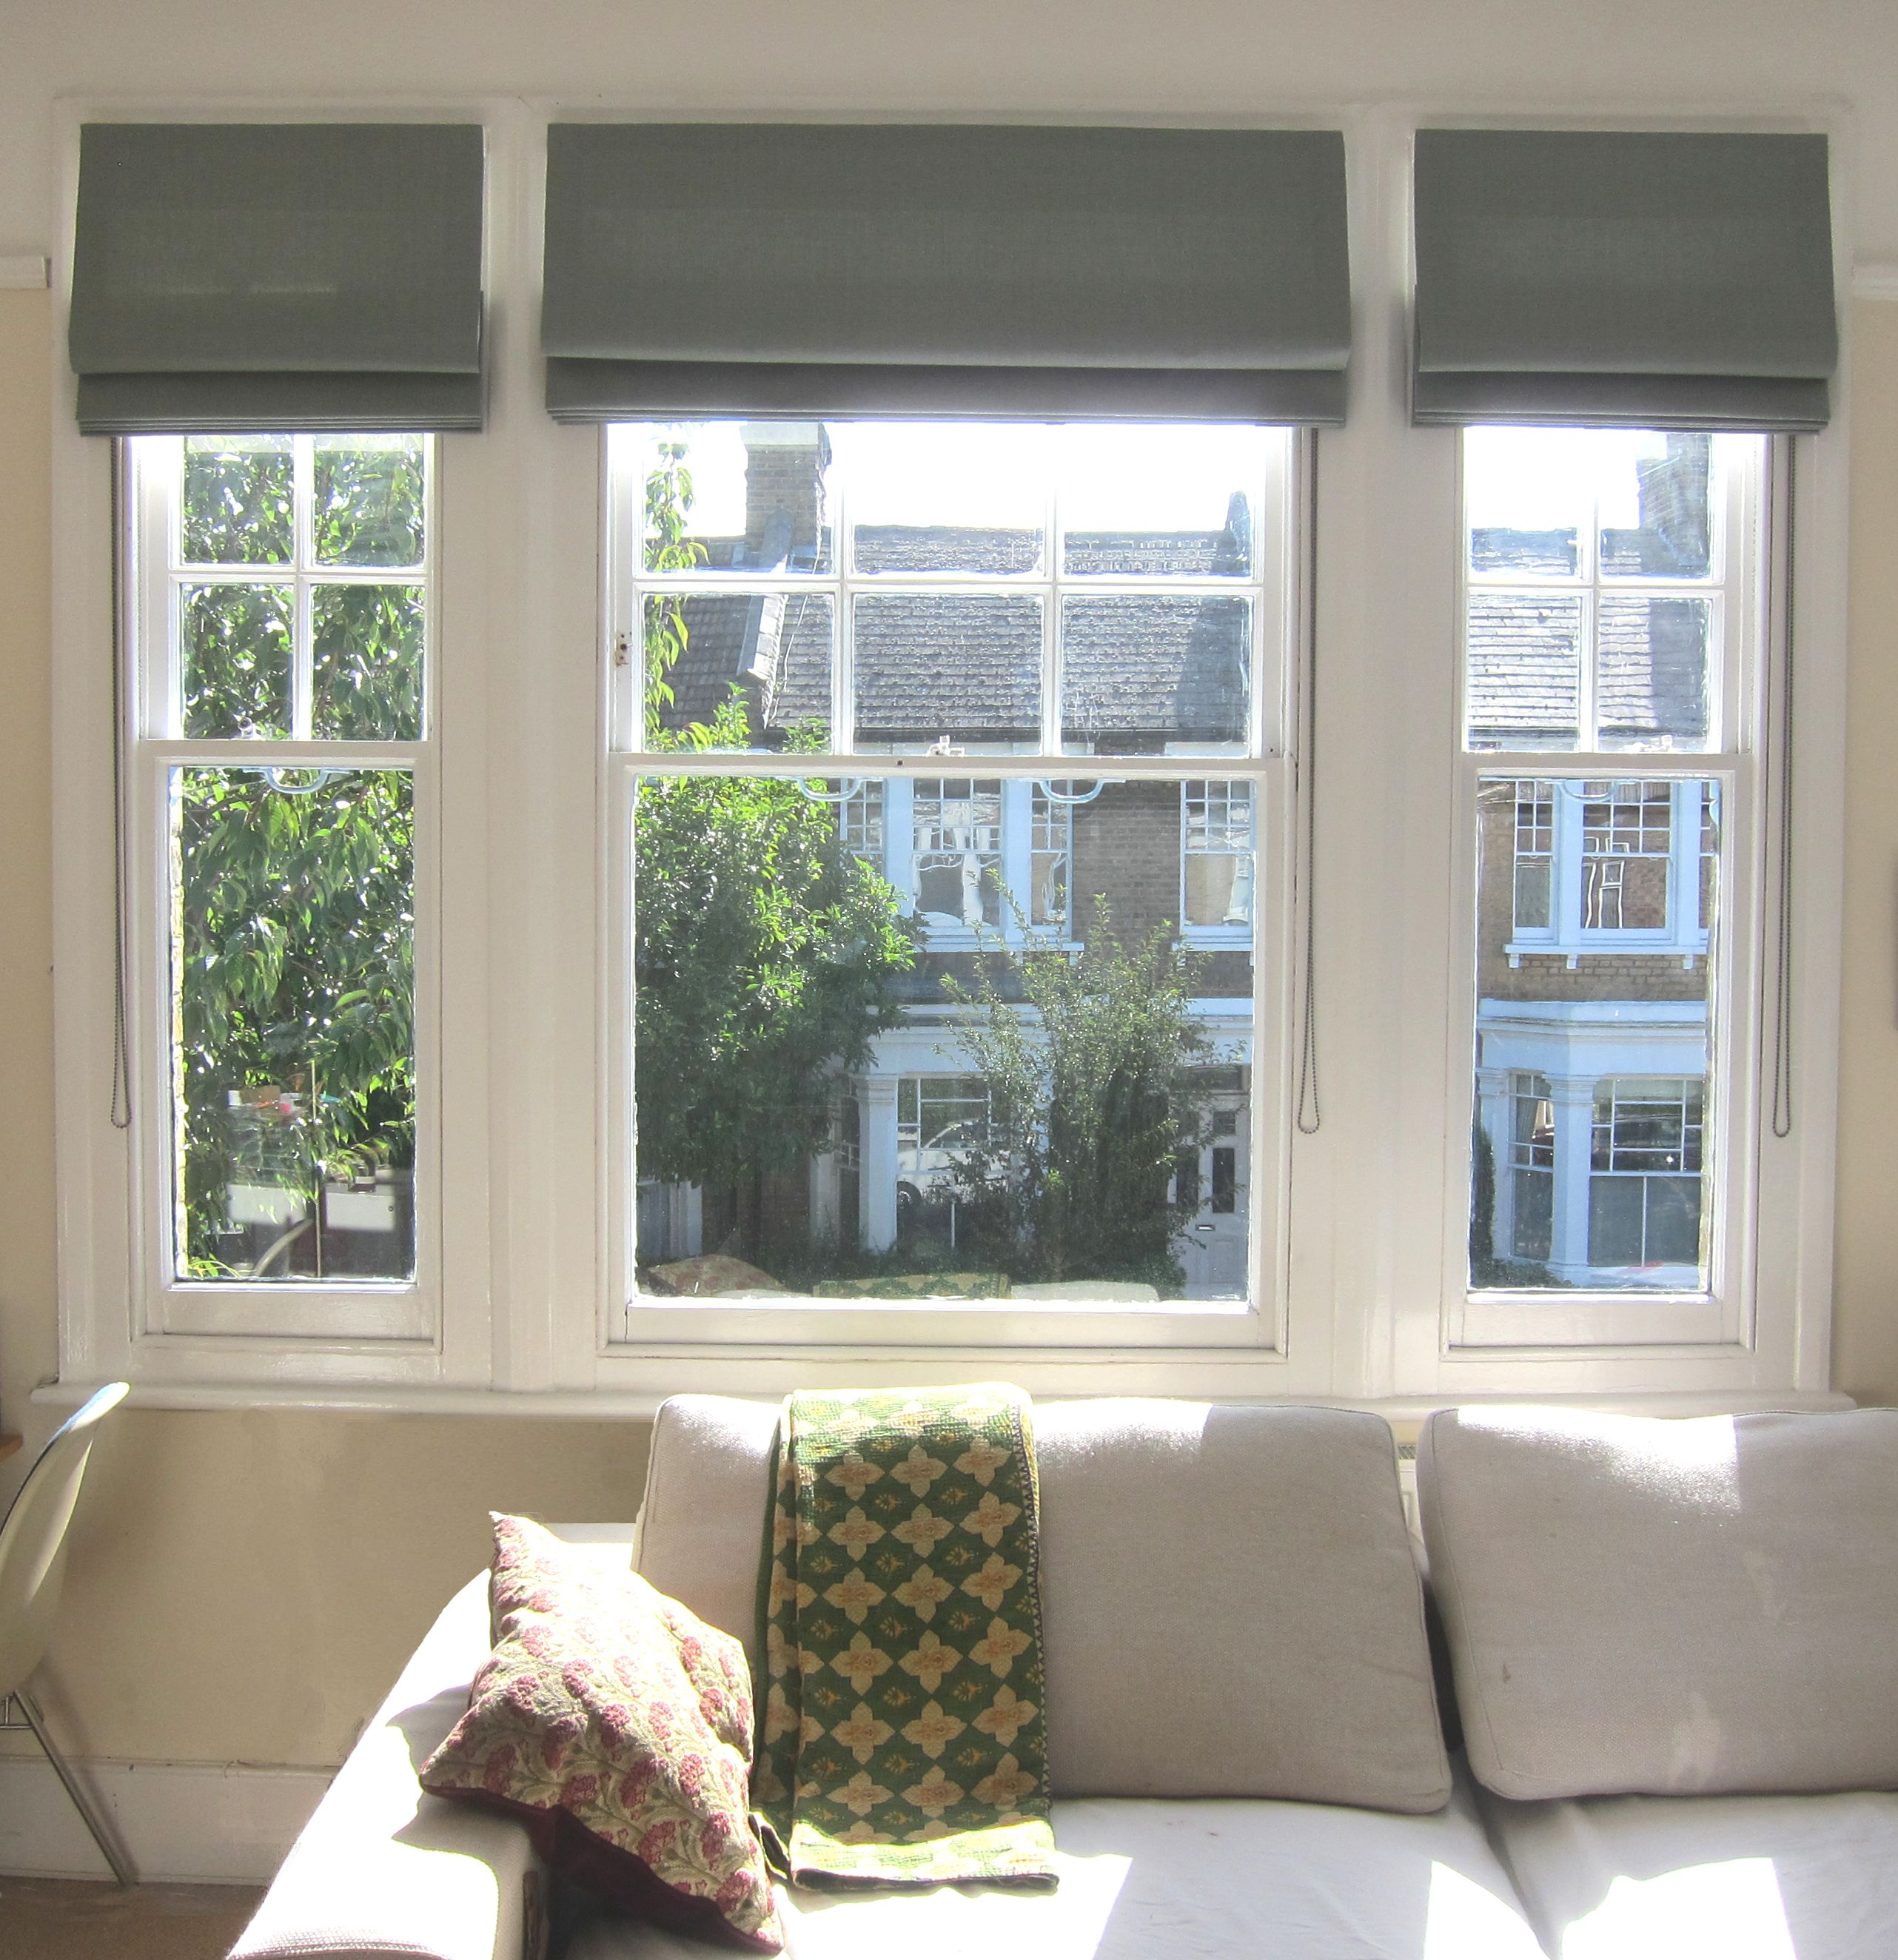 and contract vorhang gardinen fensterideen blinds more cappuccino curtains fabrics unland linares sonnenschutz und pin